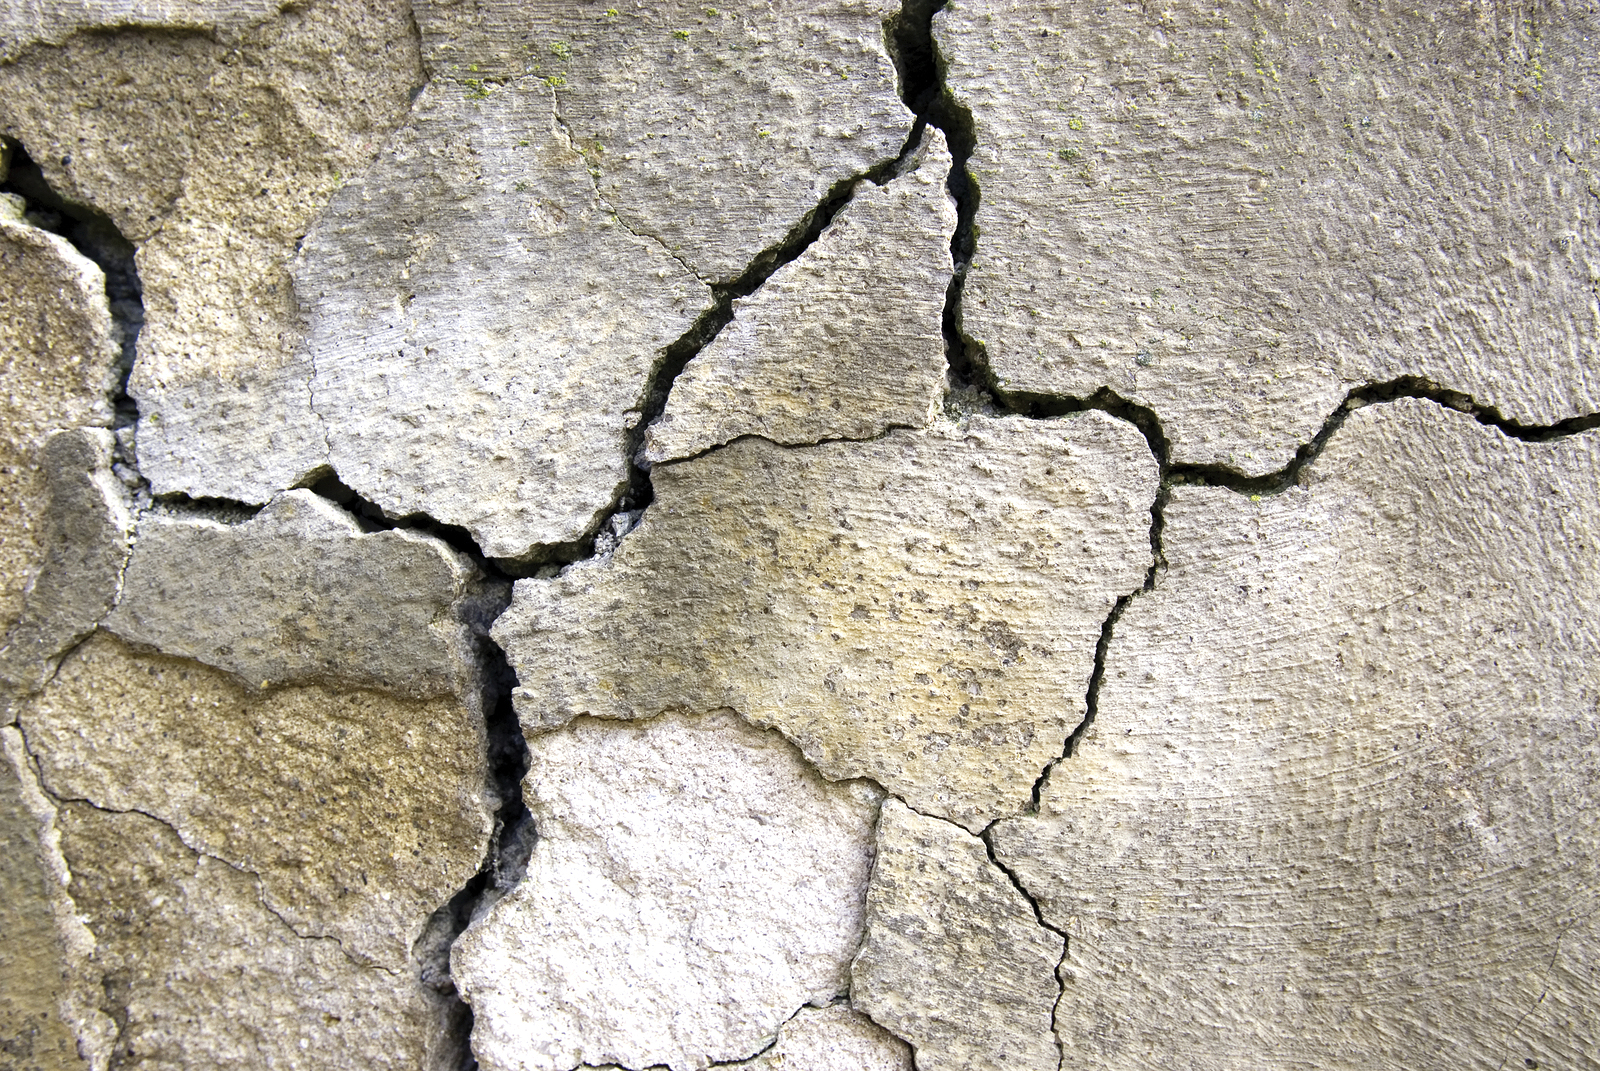 As cracks in the concrete form, water is able to fl ow freely and weaken the concrete structure. Photo © BigStockPhoto/Vladislav Mitic